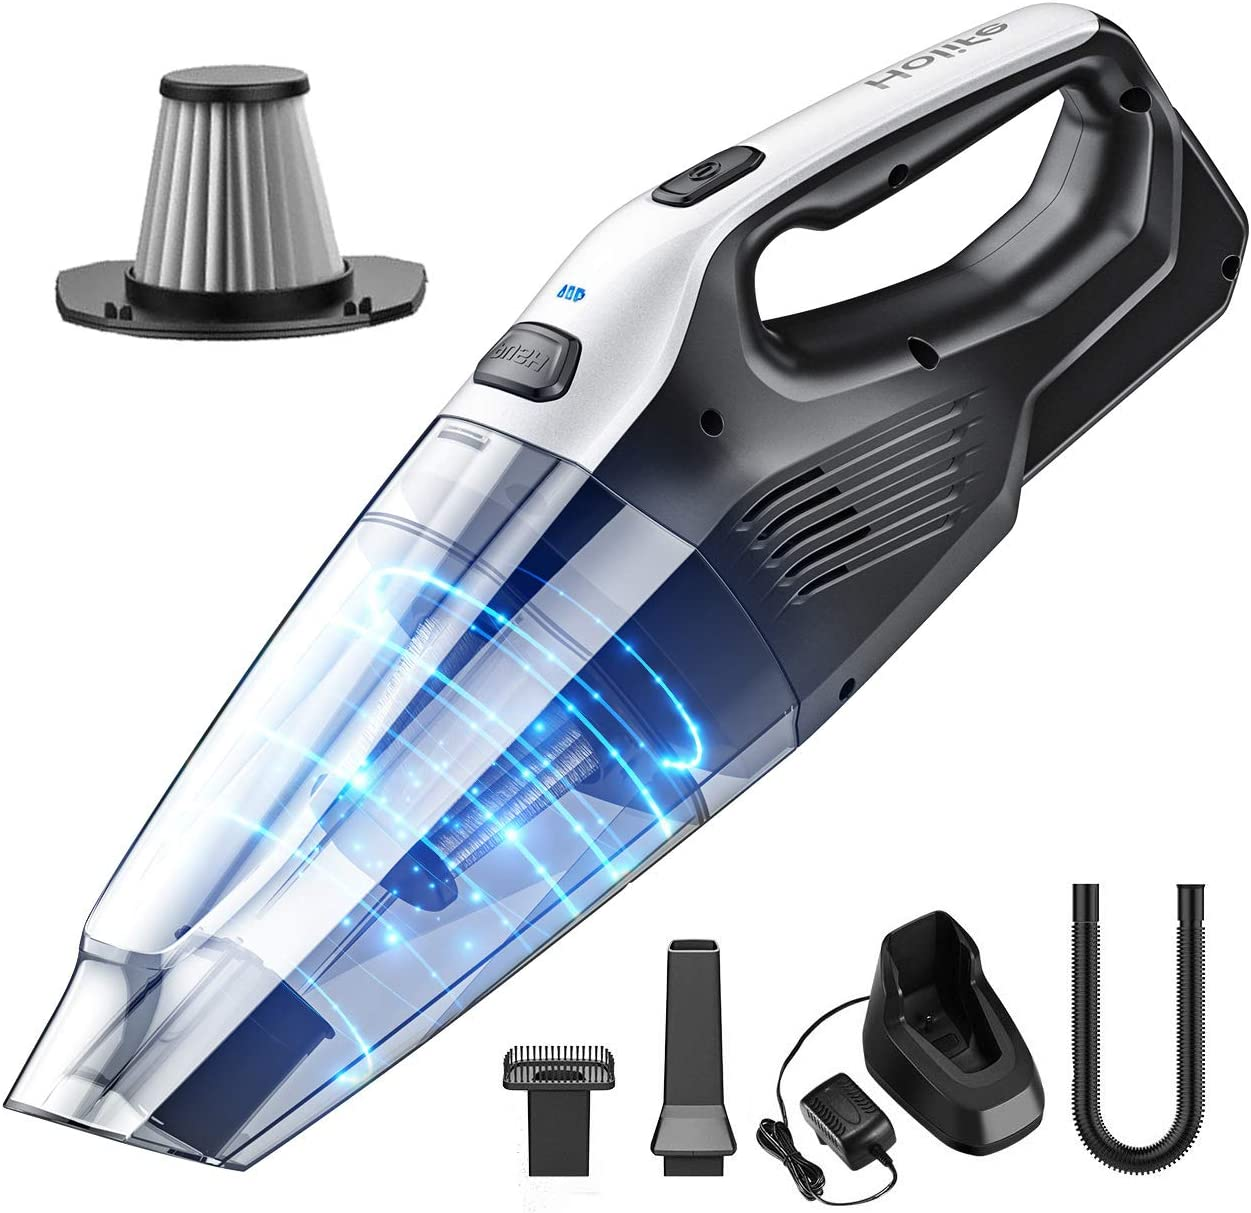 Holife Handheld Cleaner Cordless, 7kpa Portable Hand Vacuum with Replaceable Battery and Stainless Steel Filter Quick Charge Tech for Pet, Hair, Home, Office, Car Cleaning, Grey